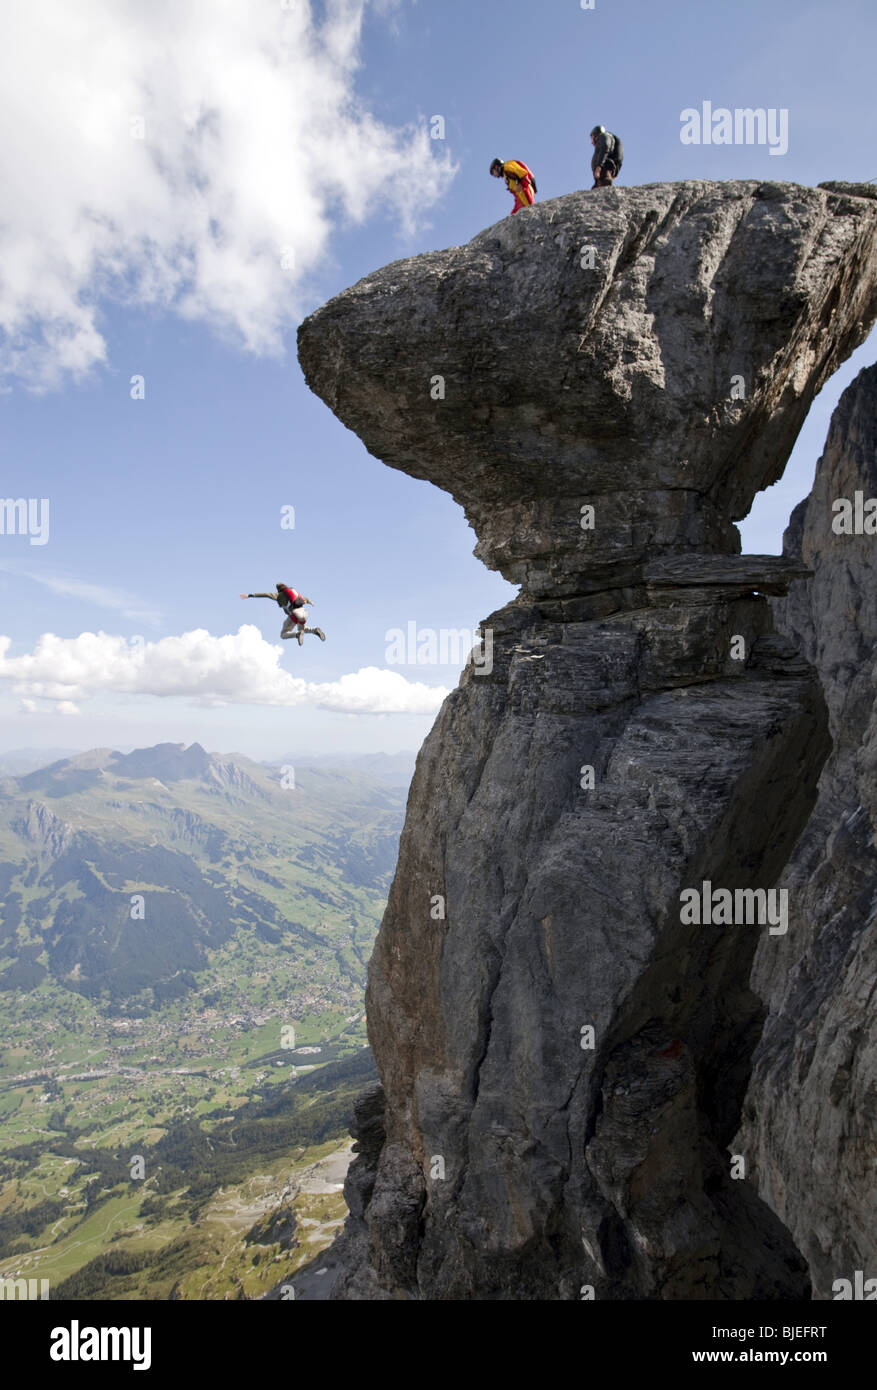 Basejumper, Eiger North Face, Switzerland - Stock Image